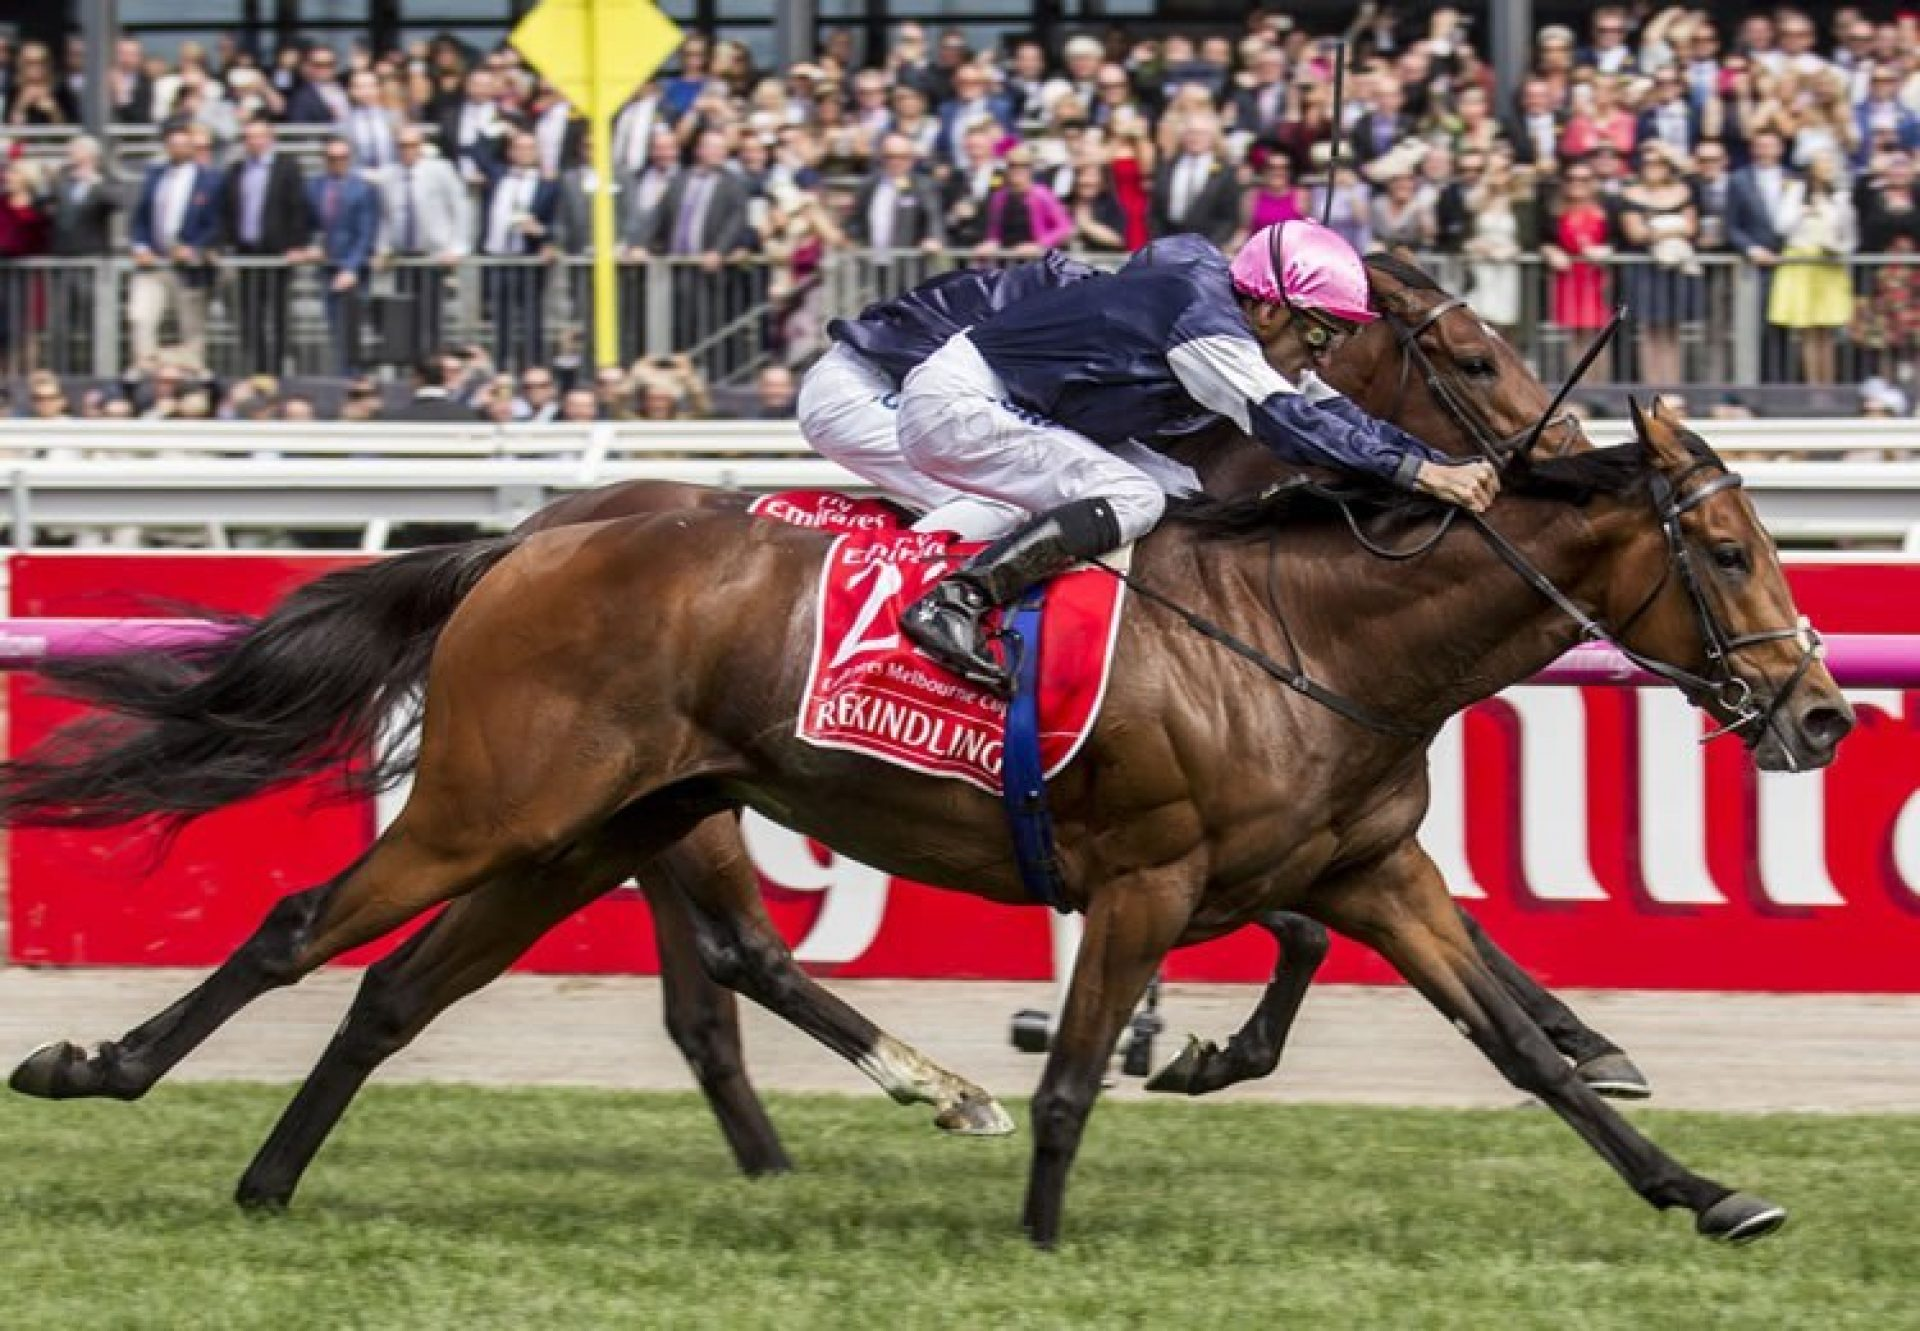 Rekindling (High Chaparral) winning the G1 Melbourne Cup at Flemington